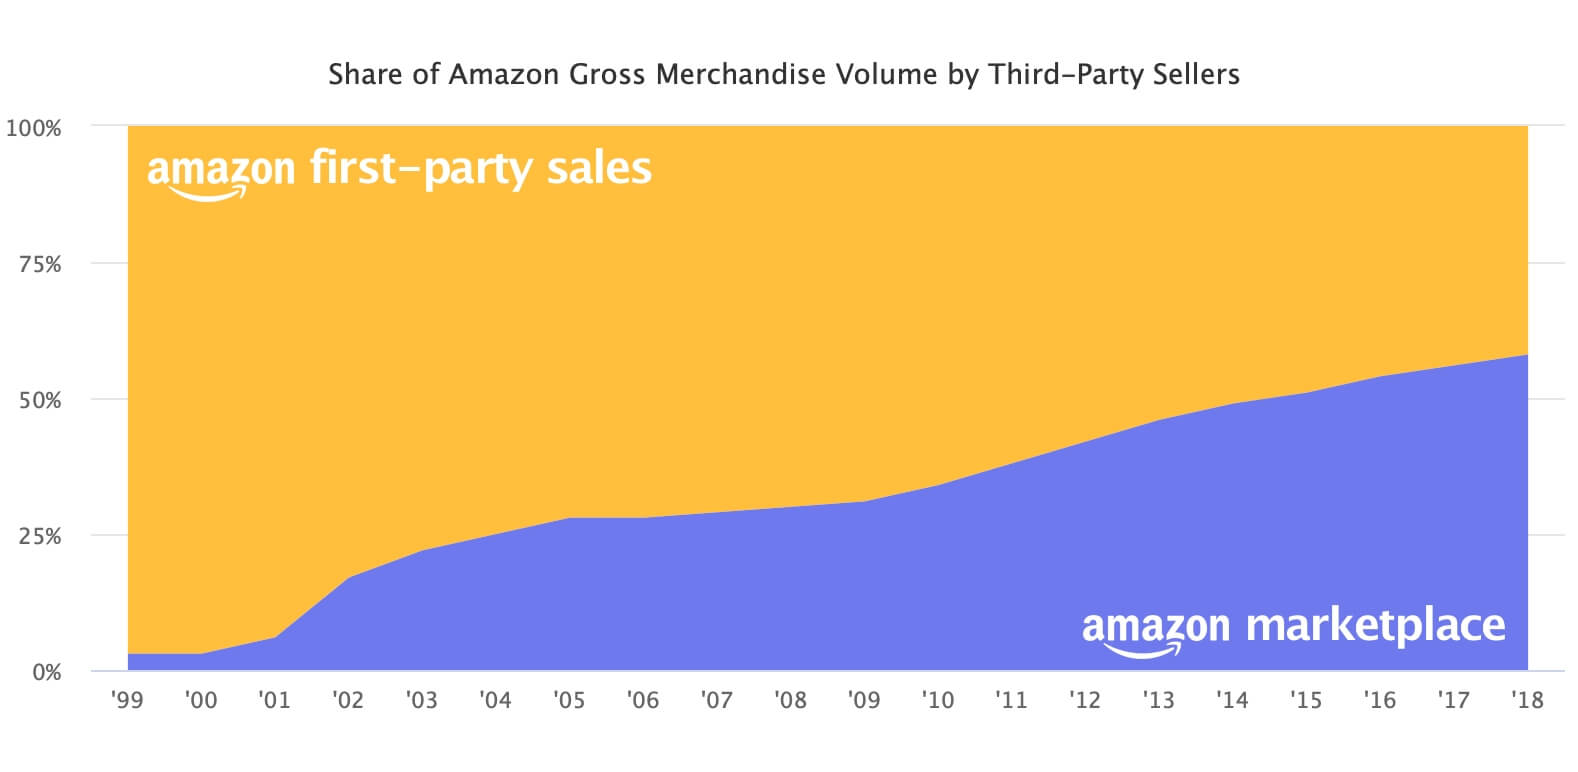 Share of Amazon Gross Merchandise Volume by Third-Party Sellers